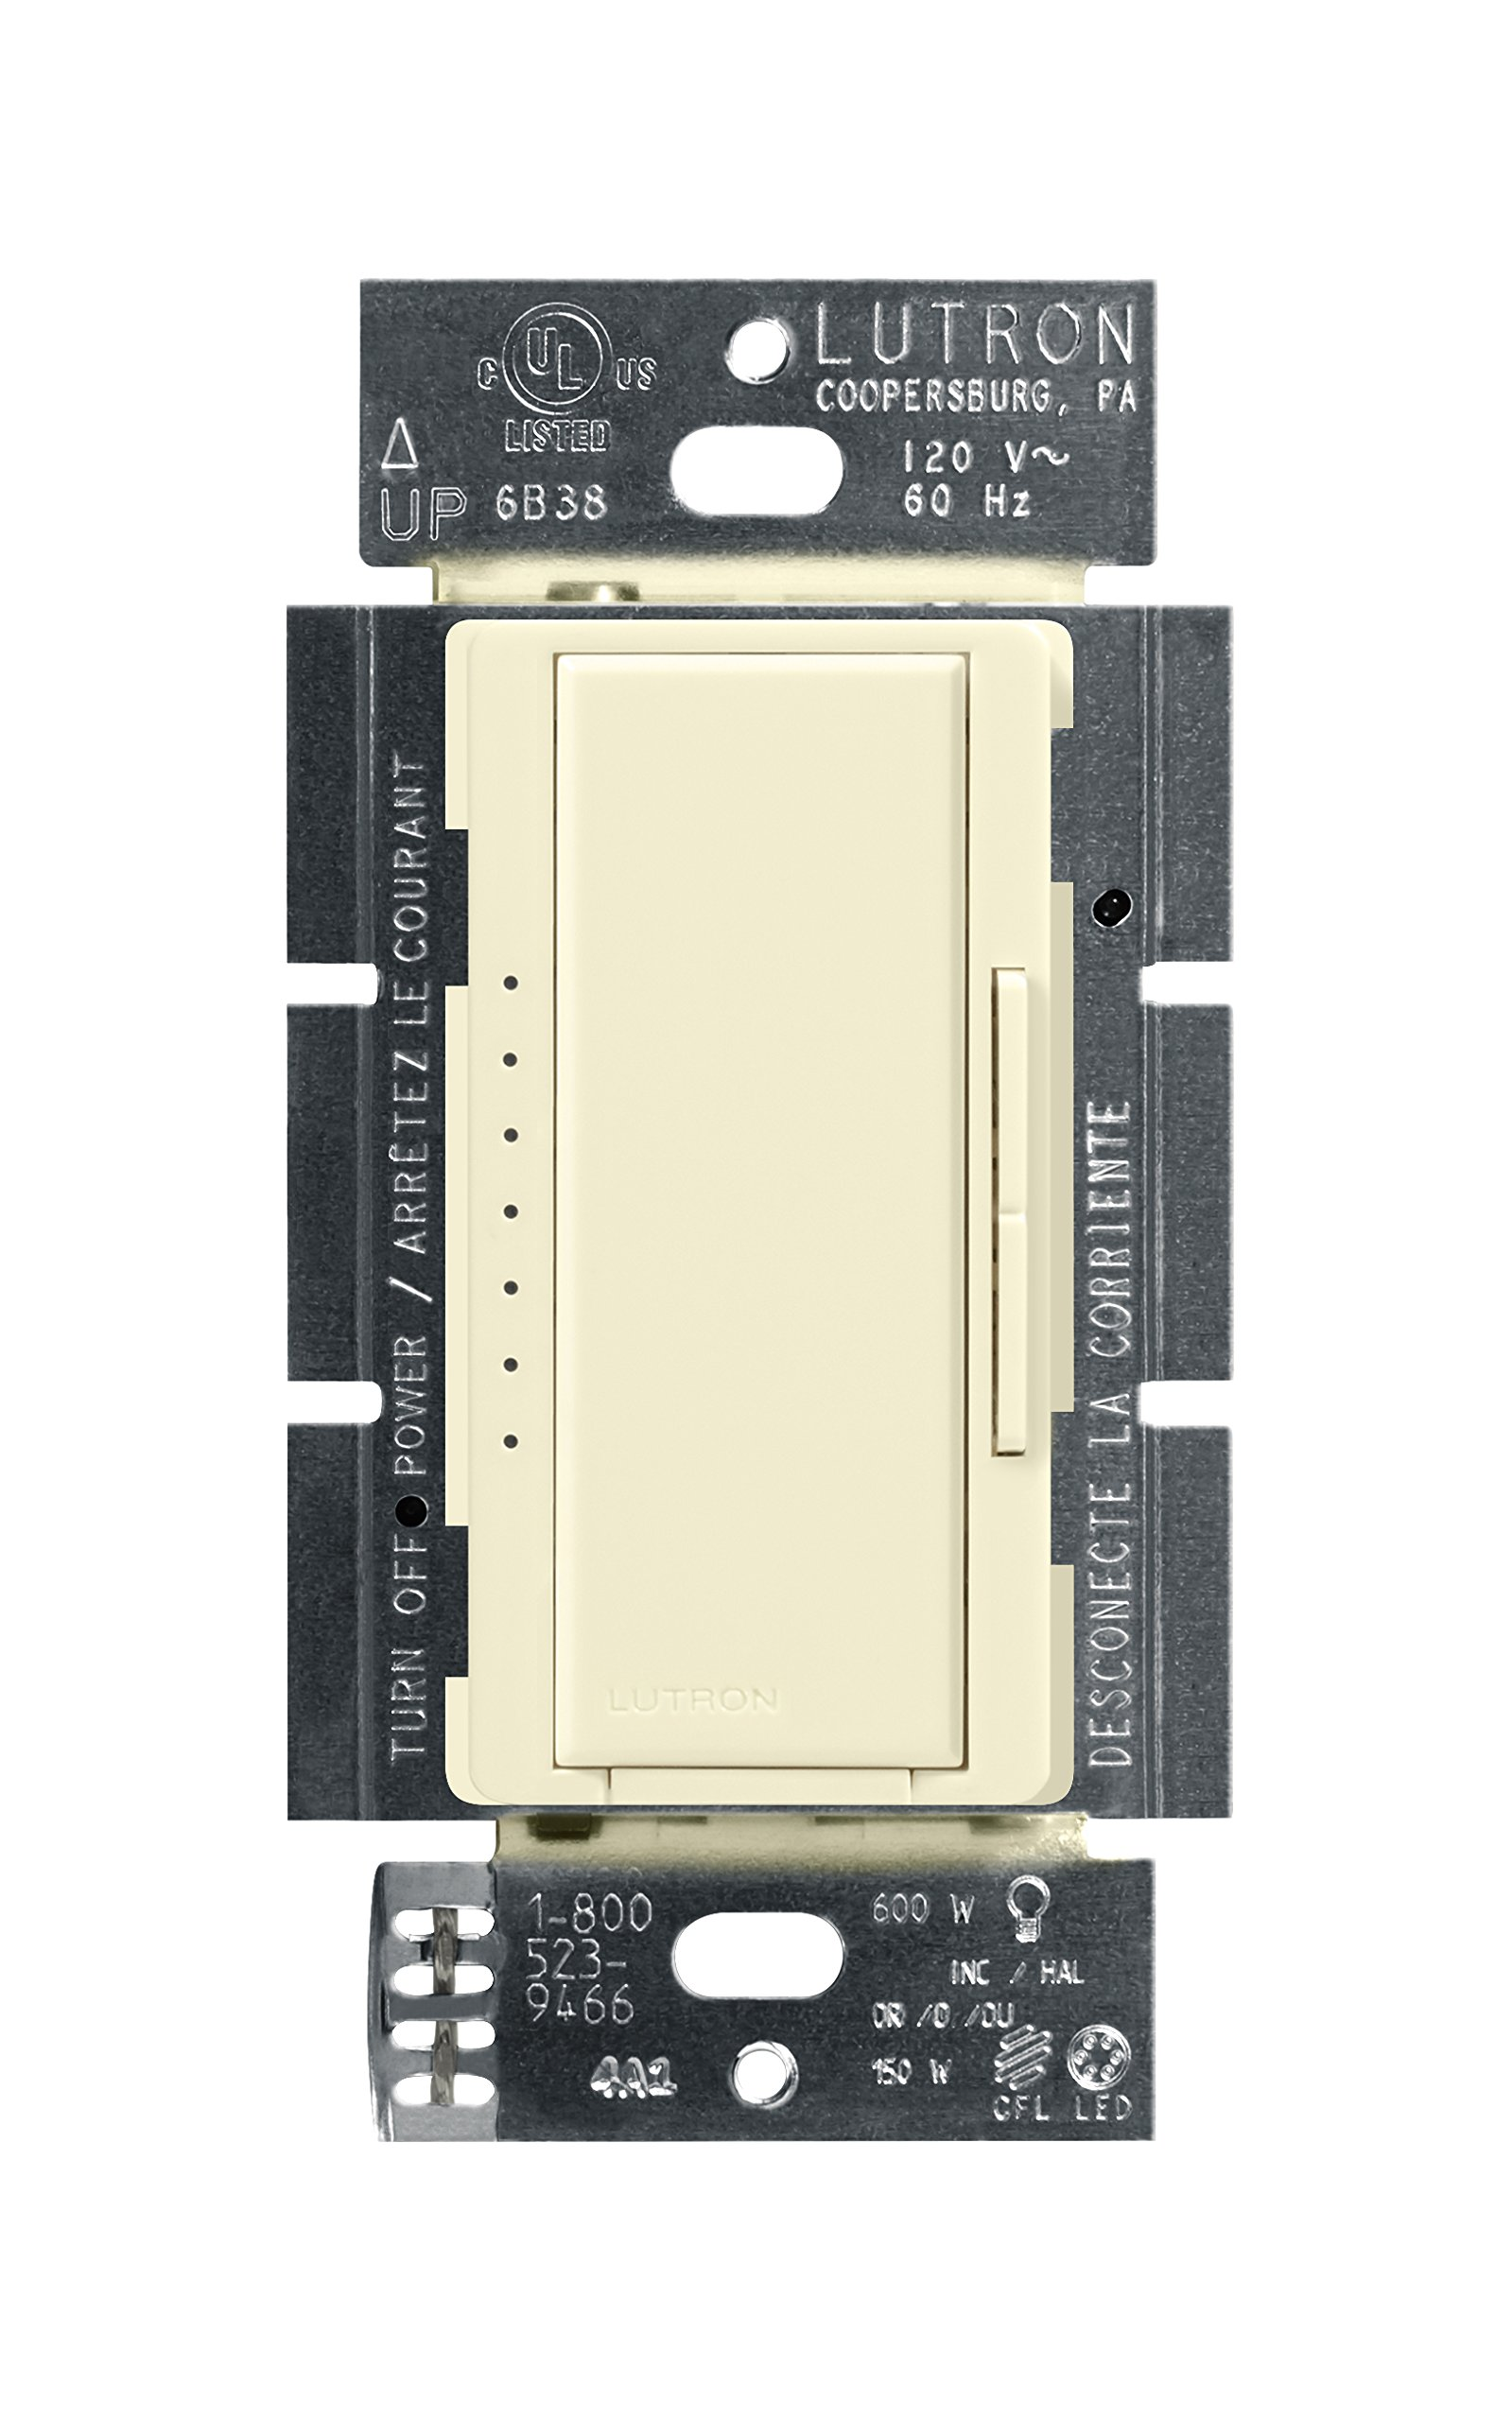 Lutron Maestro C.L Dimmer Switch for Dimmable LED, Halogen & Incandescent Bulbs, Single-Pole or Multi-Location, MACL-153M-AL, Almond